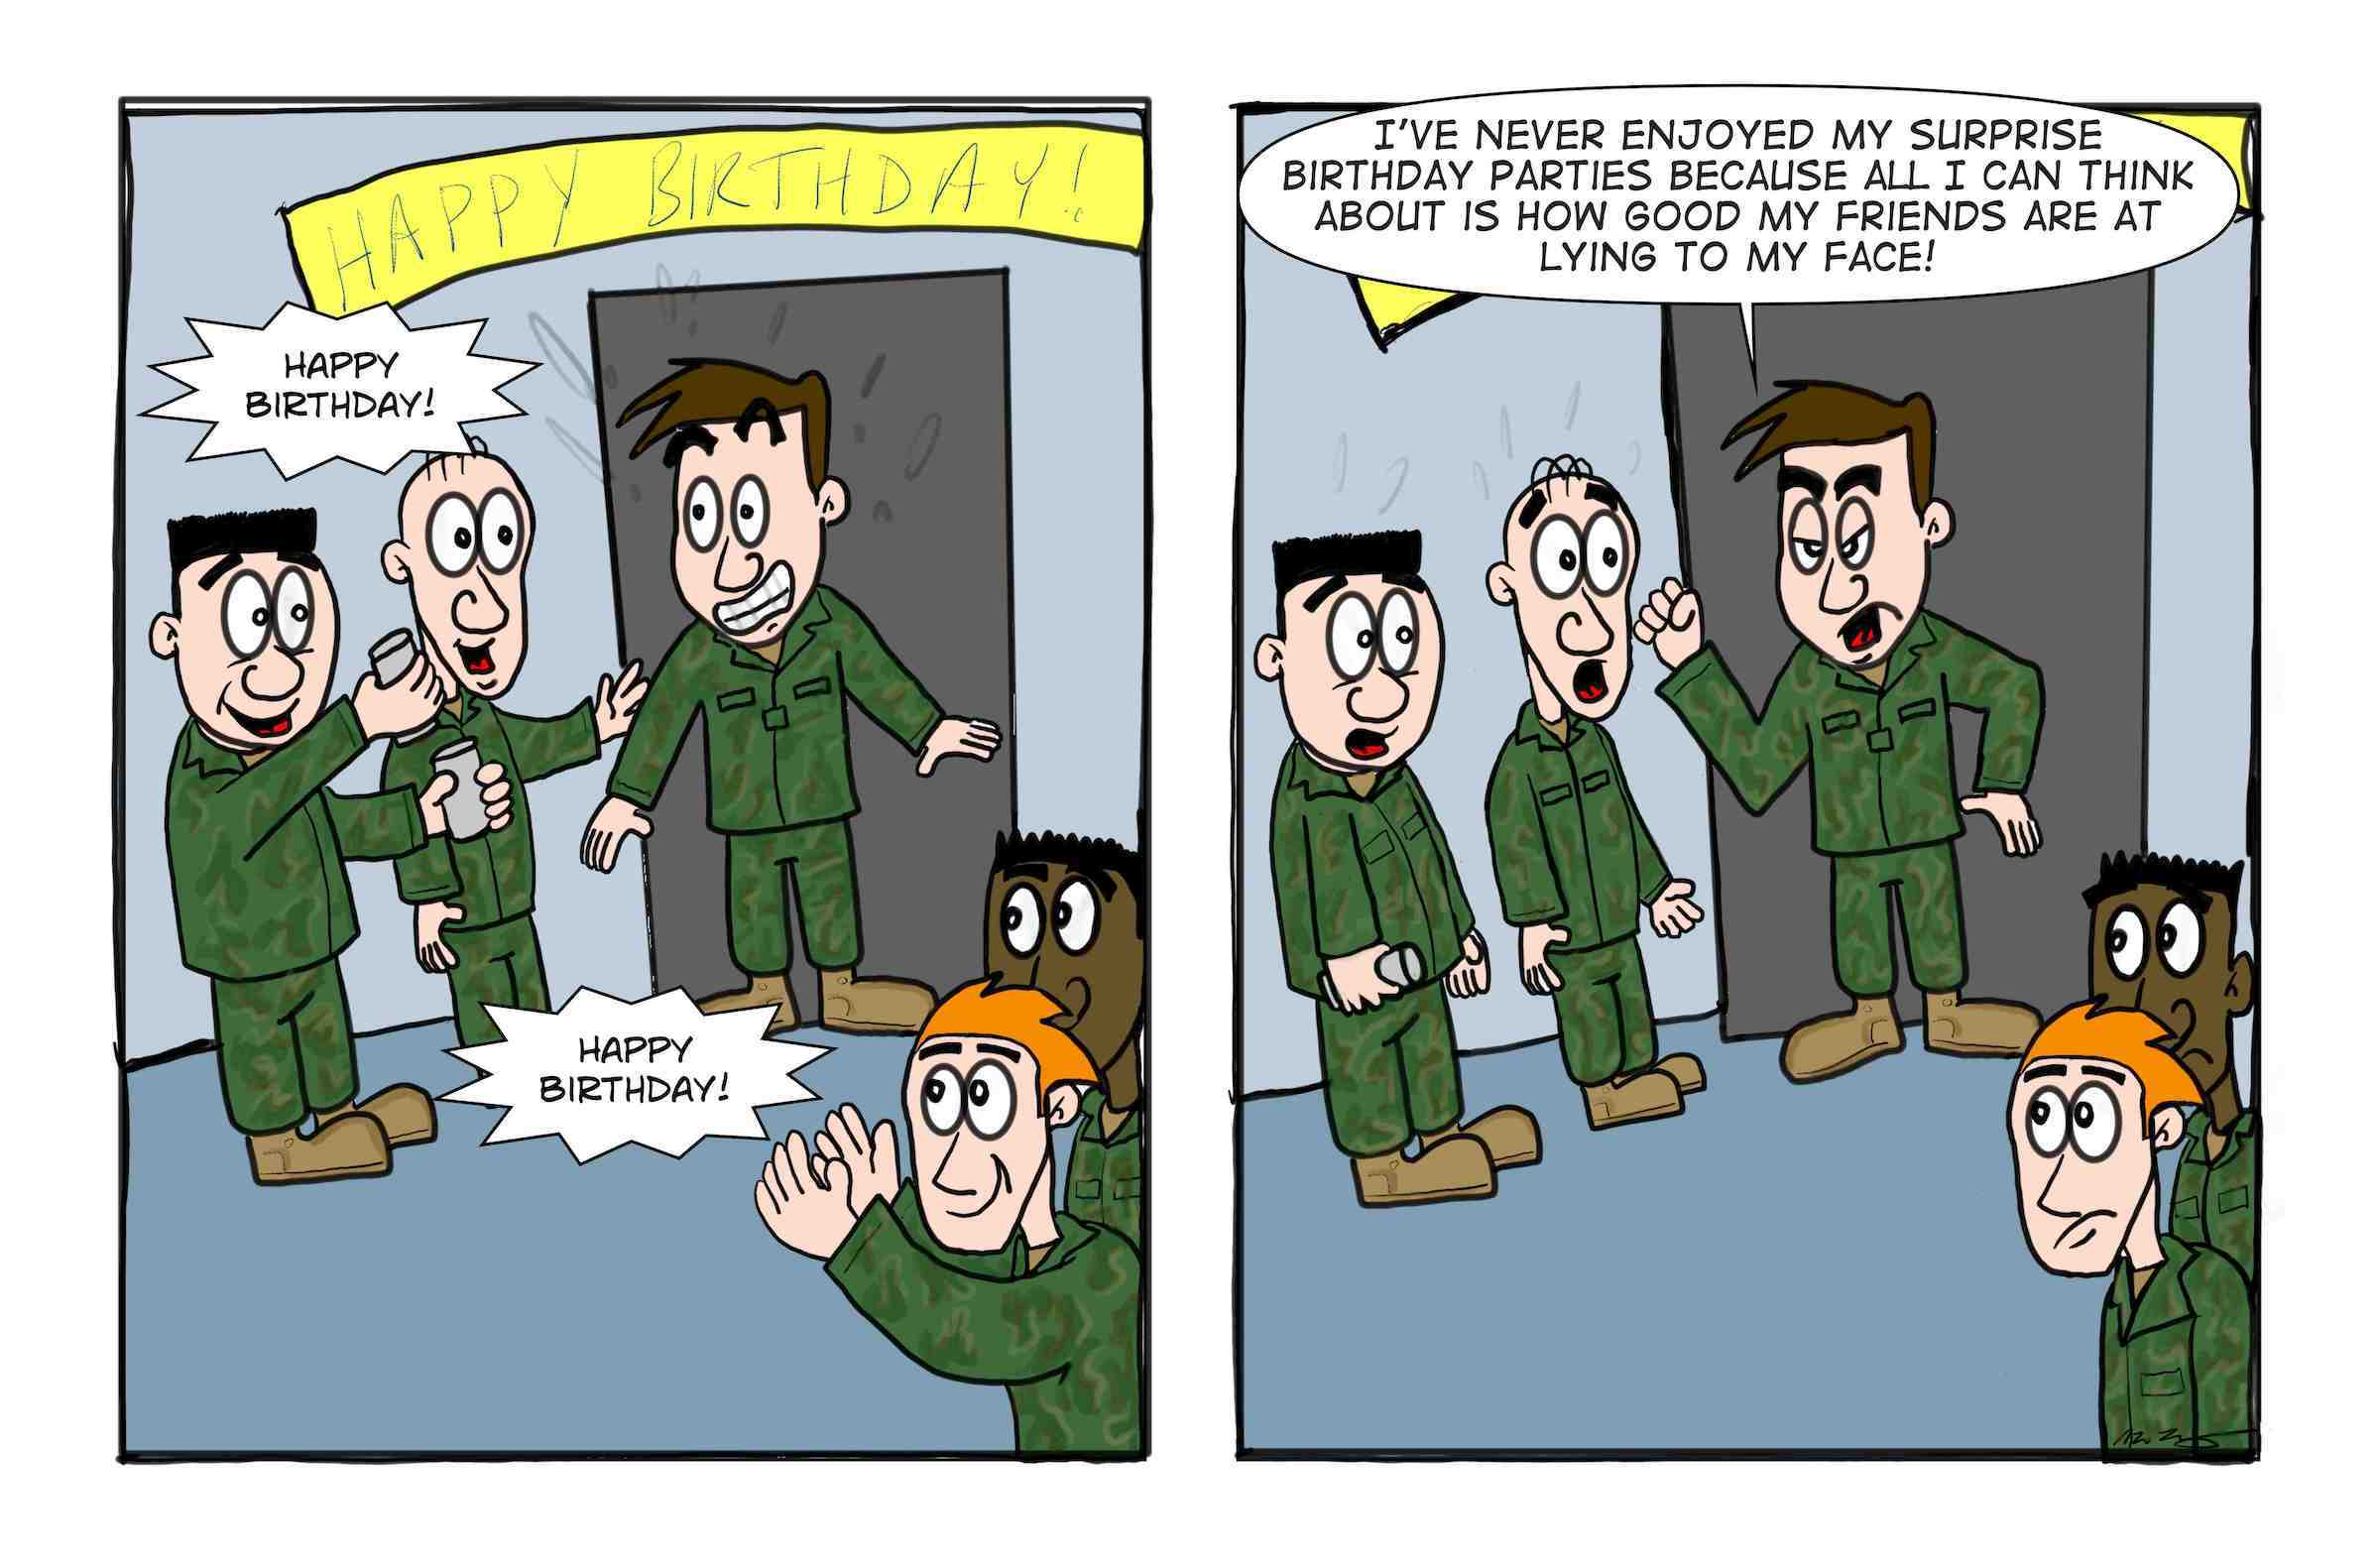 Army surprise parties suck and reveal that your friends lie.